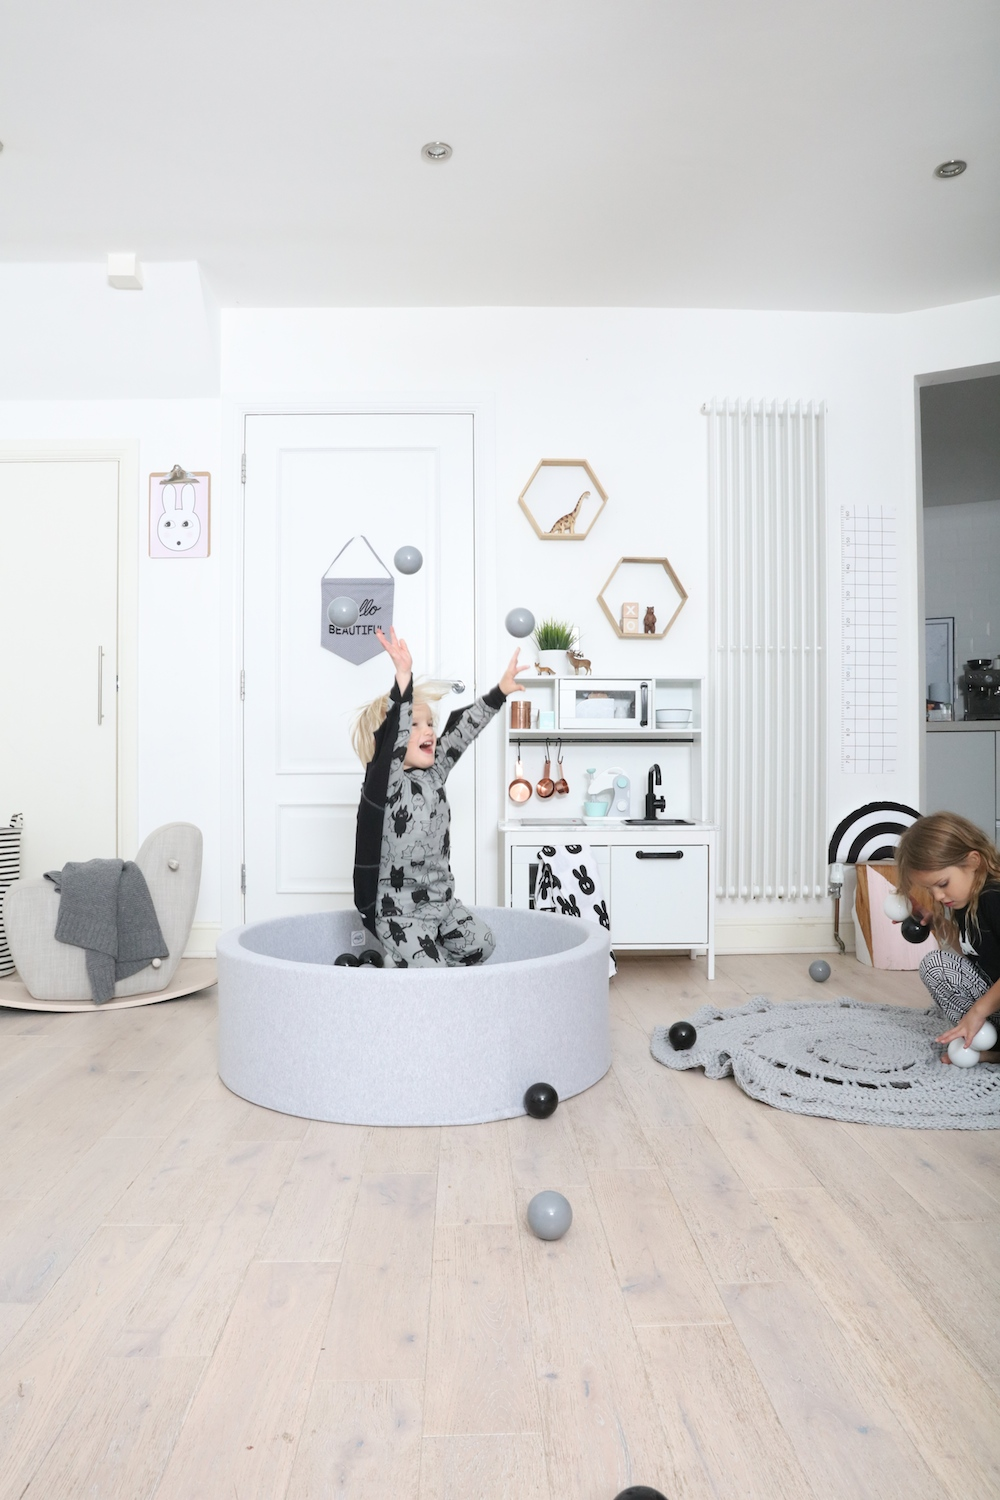 ball_pit_monochrome_the_modern_nursery_chleuberkid